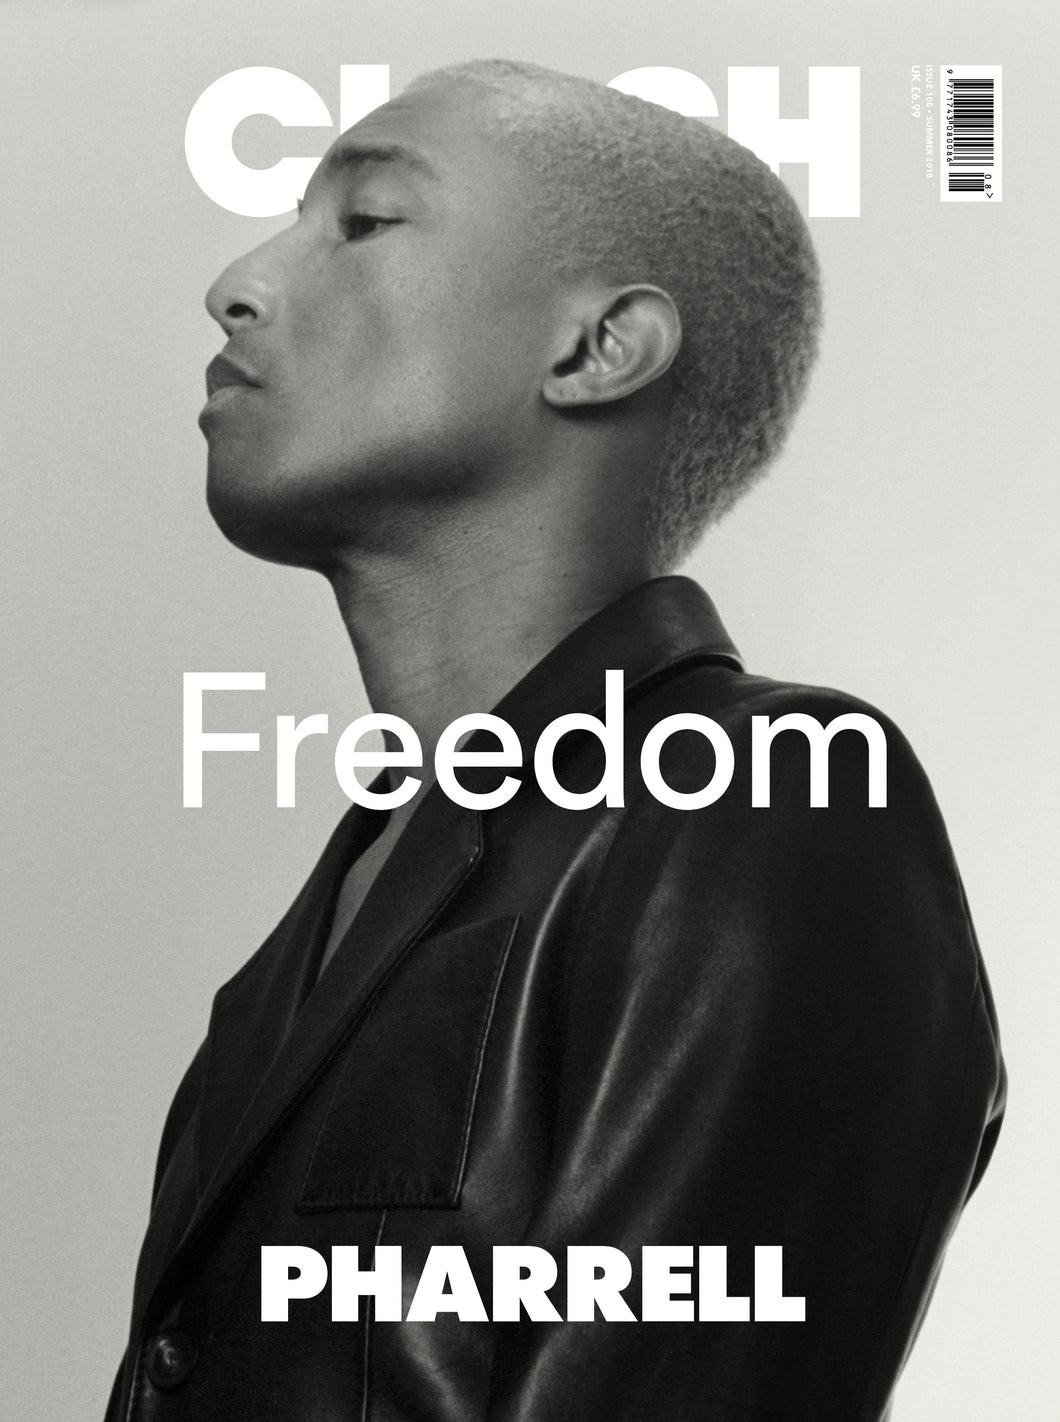 Clash Issue 108 Pharrell